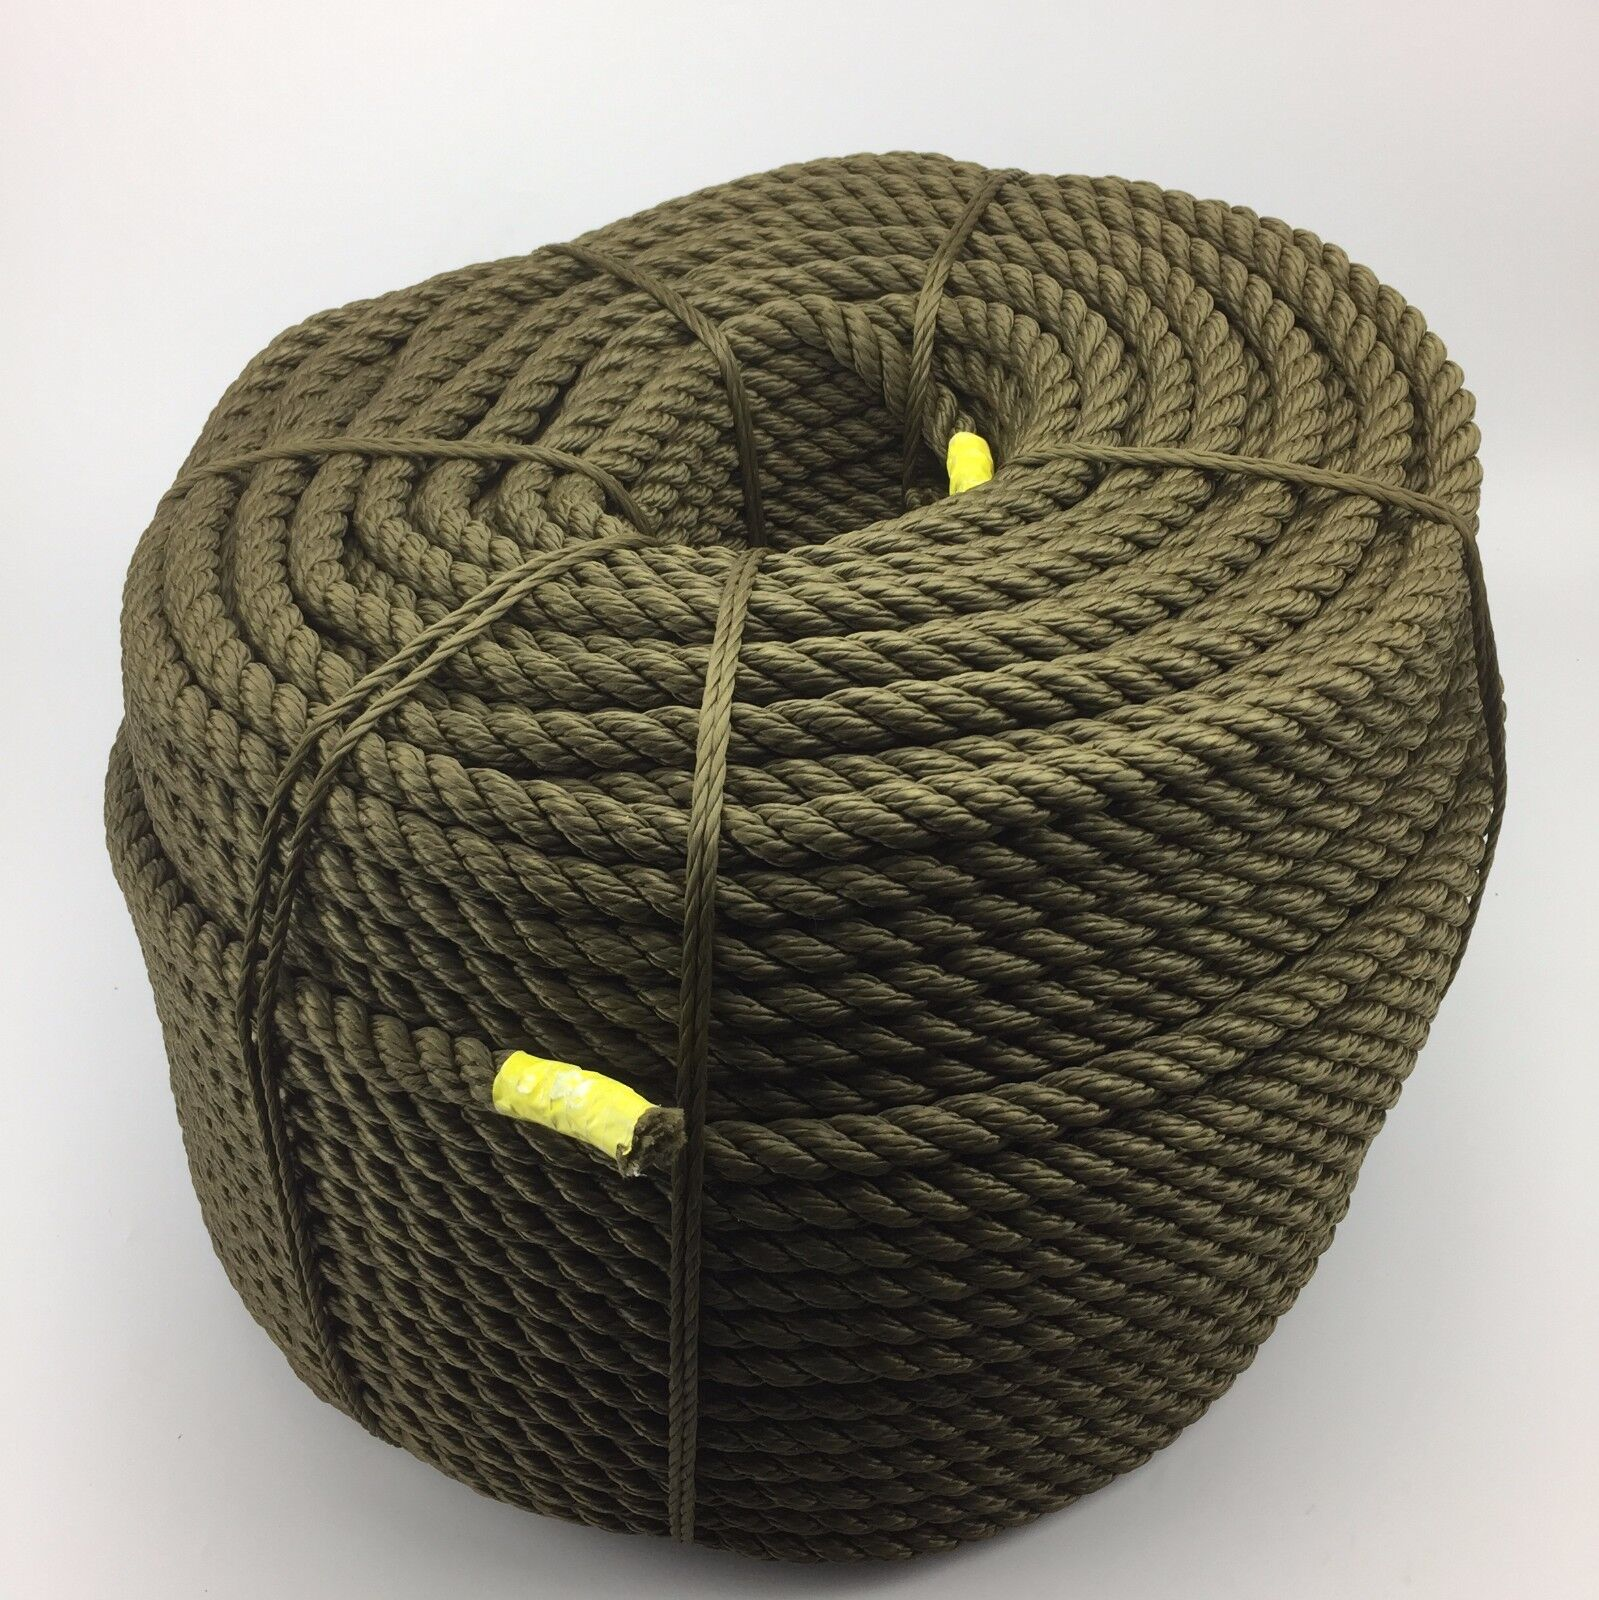 50mts x 8mm Olive Drab 3 Strand polyester, military, boats, fenders lines